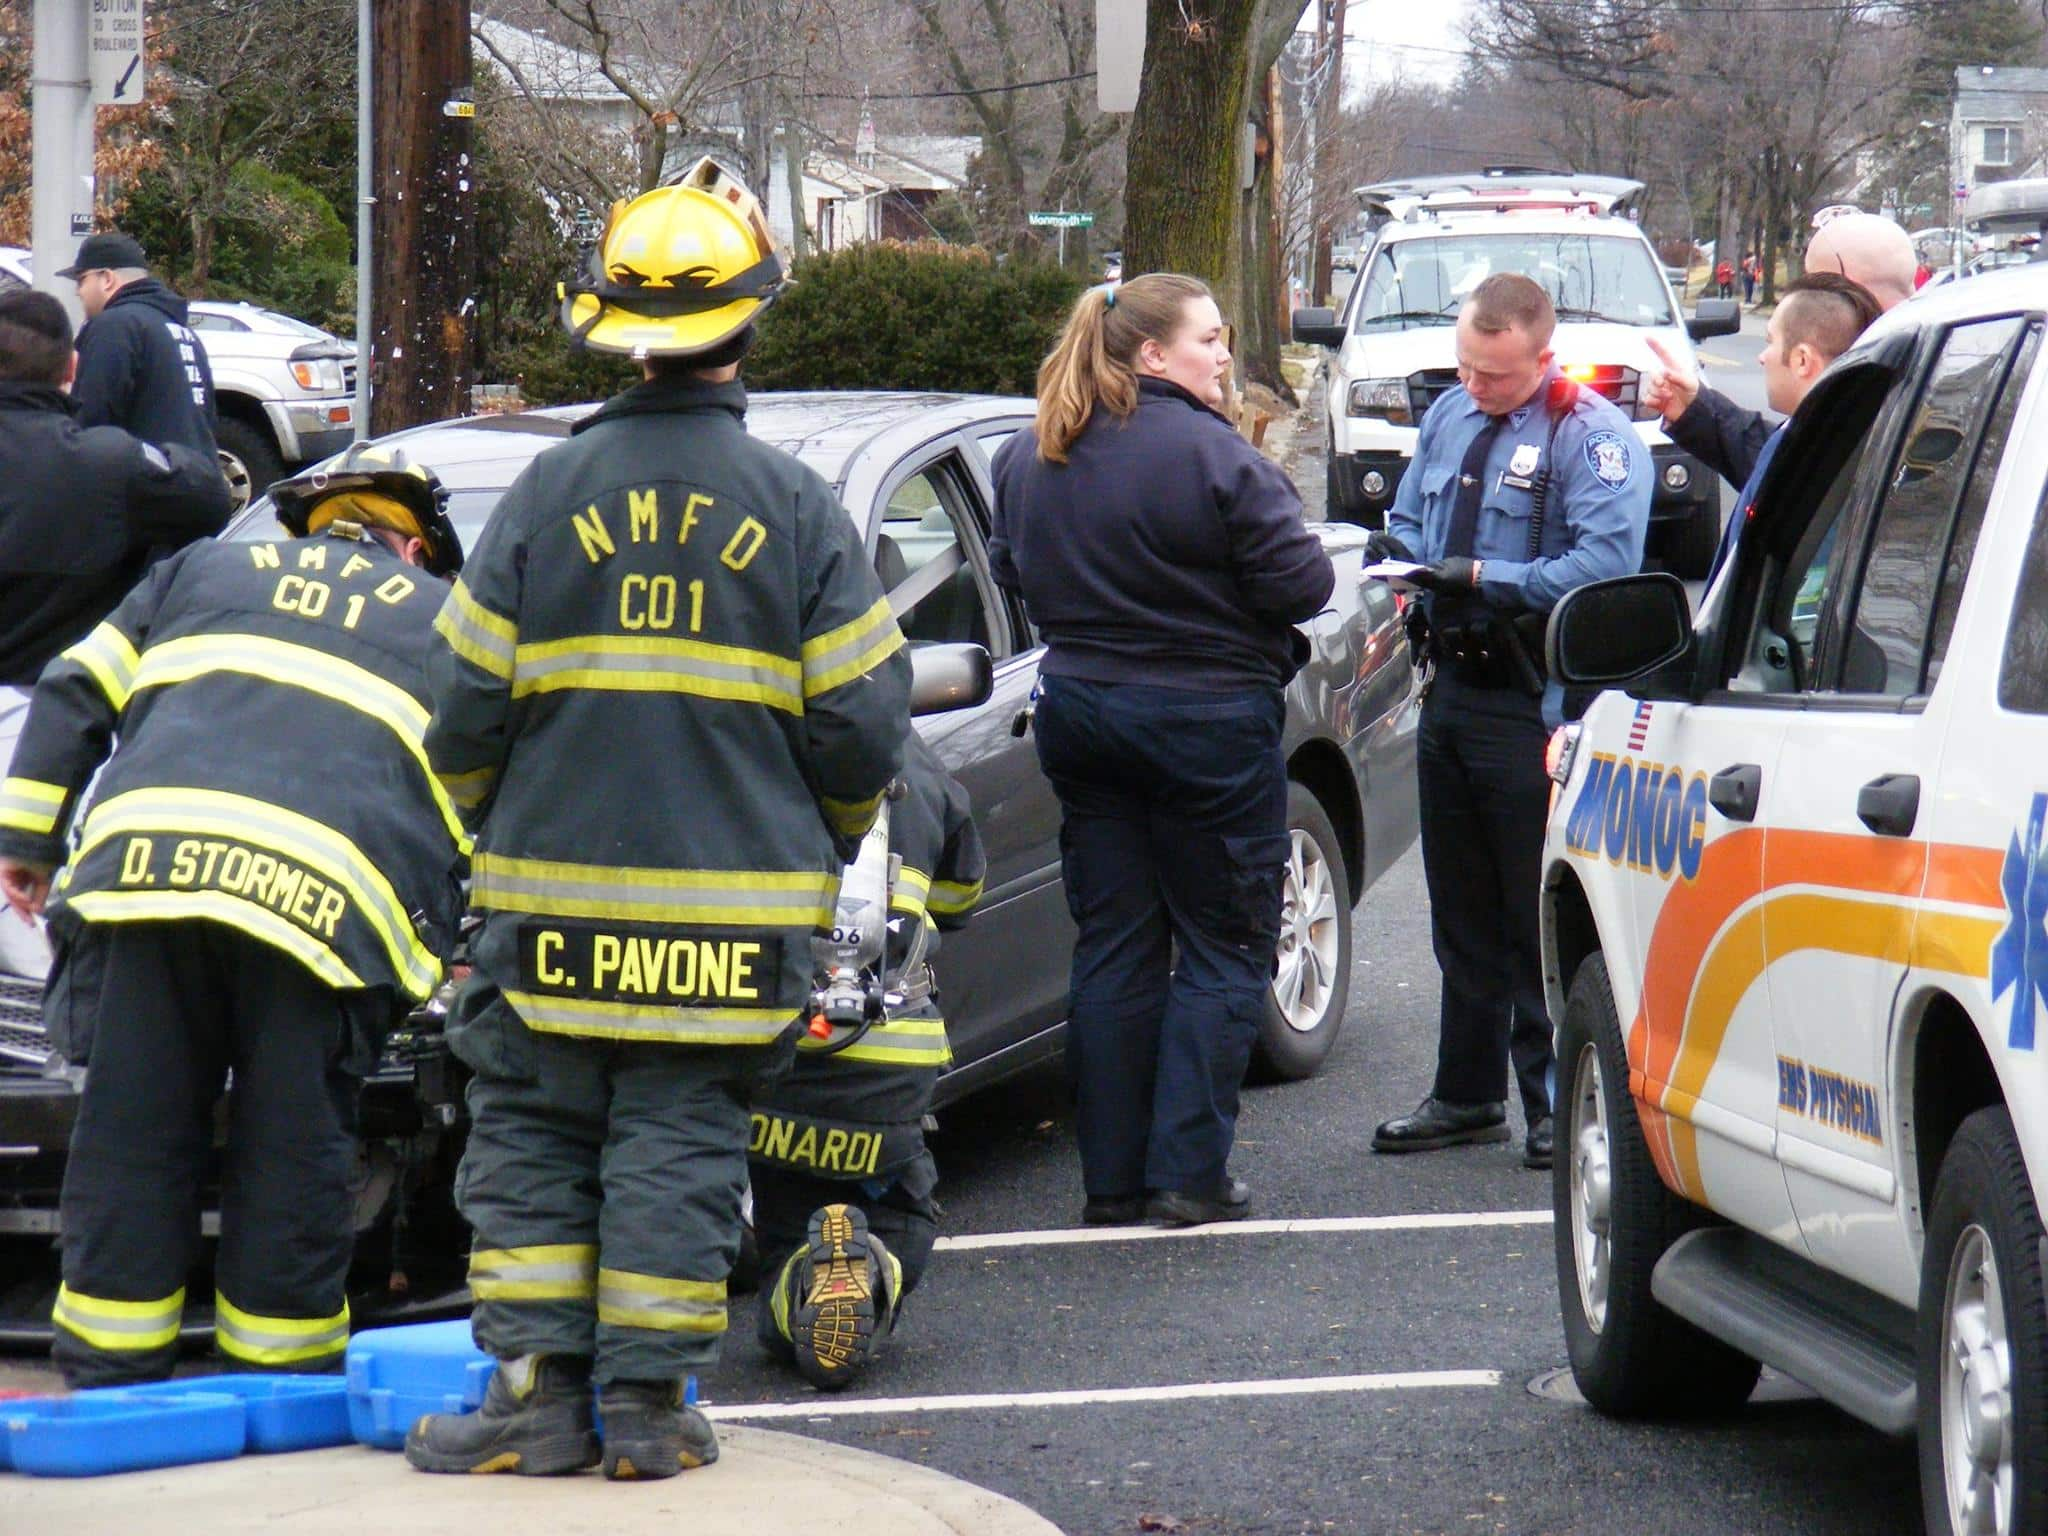 Rollover Collision in New Milford at Intersection of Boulevard and Henley Avenue